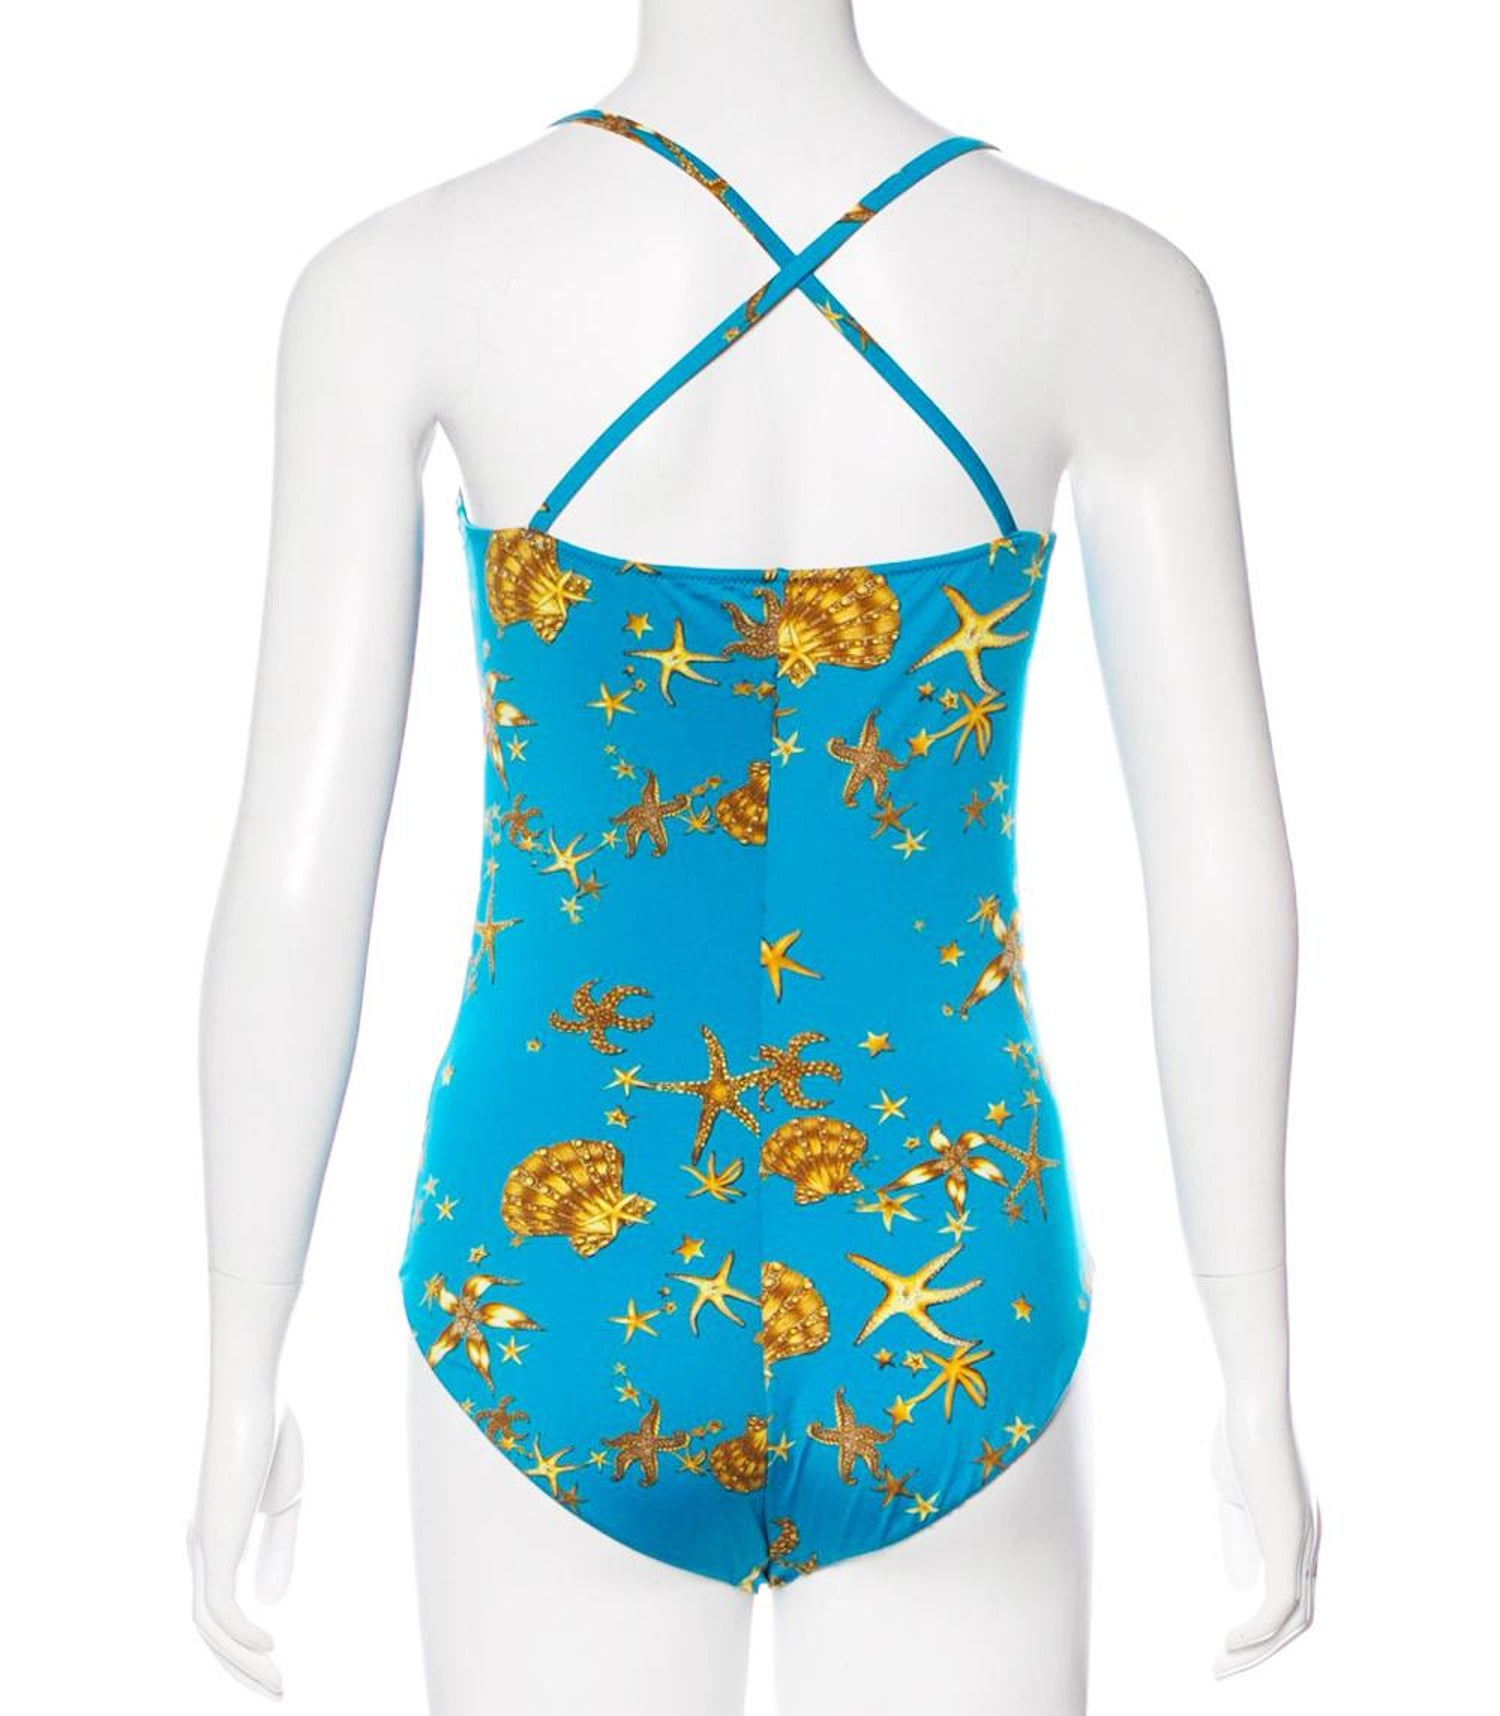 6445a6dc8a New Versace Seashell and Starfish Turquoise Yellow Swimsuit size 2 For Sale  at 1stdibs